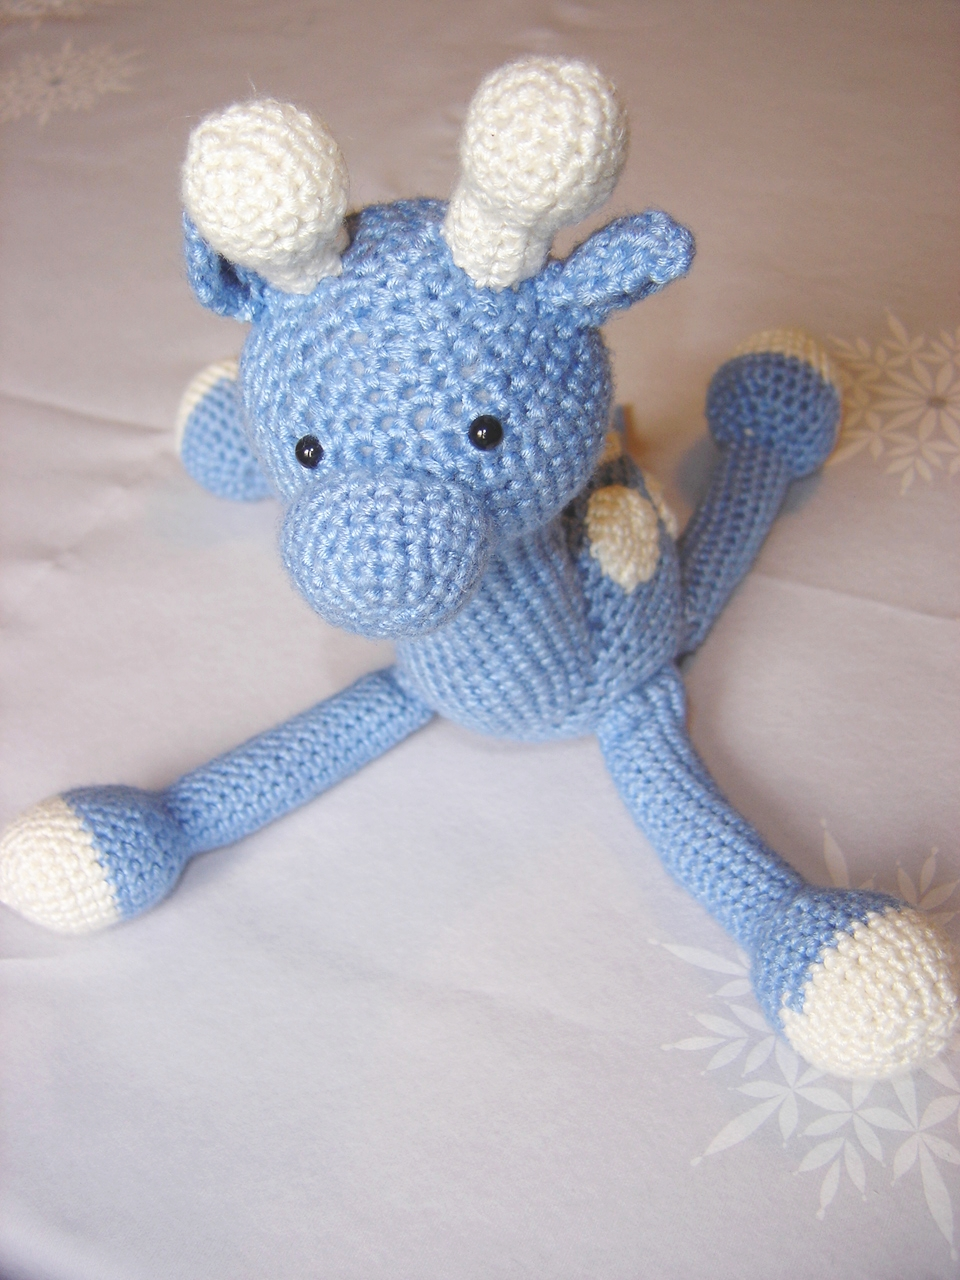 Crochet Patterns For Giraffe : little black teapot: Horace the Crochet Giraffe